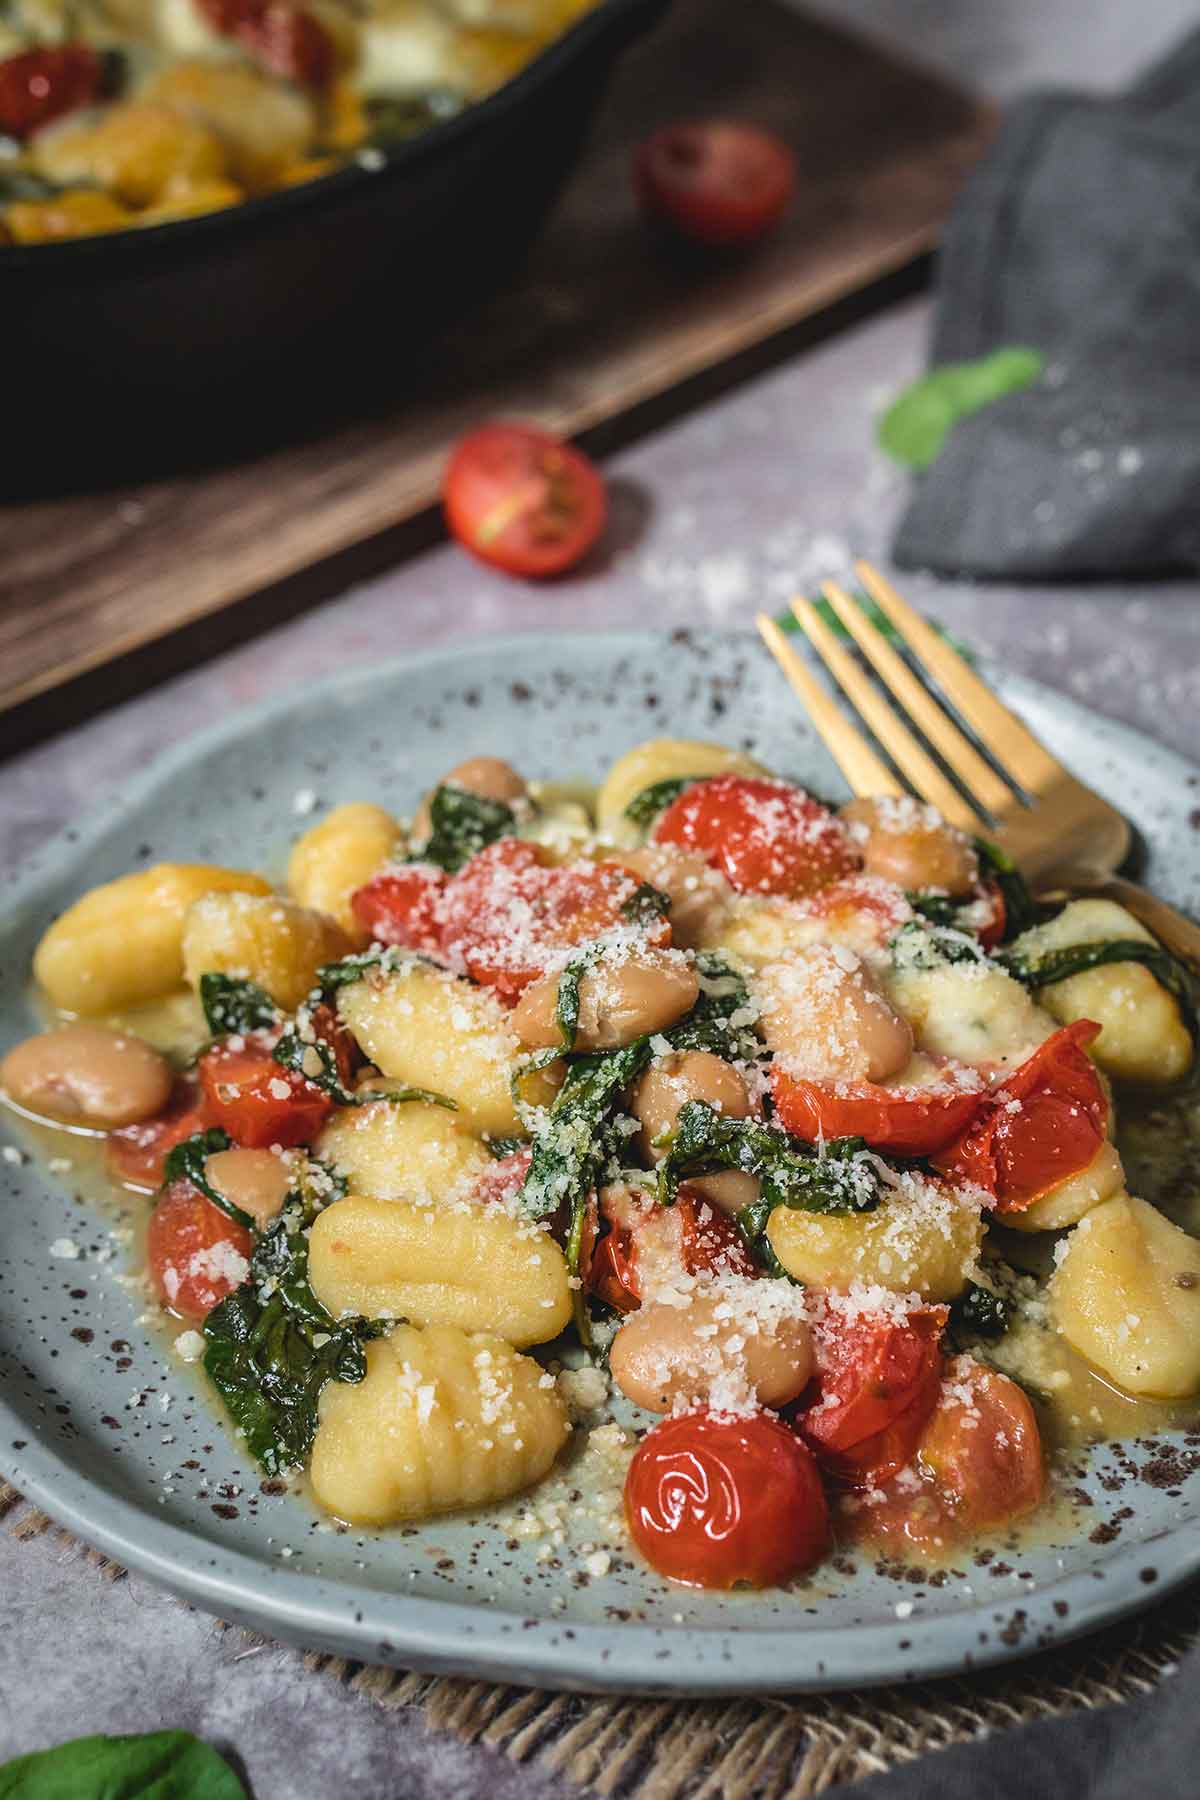 Baked gnocchi with spinach served in a plate